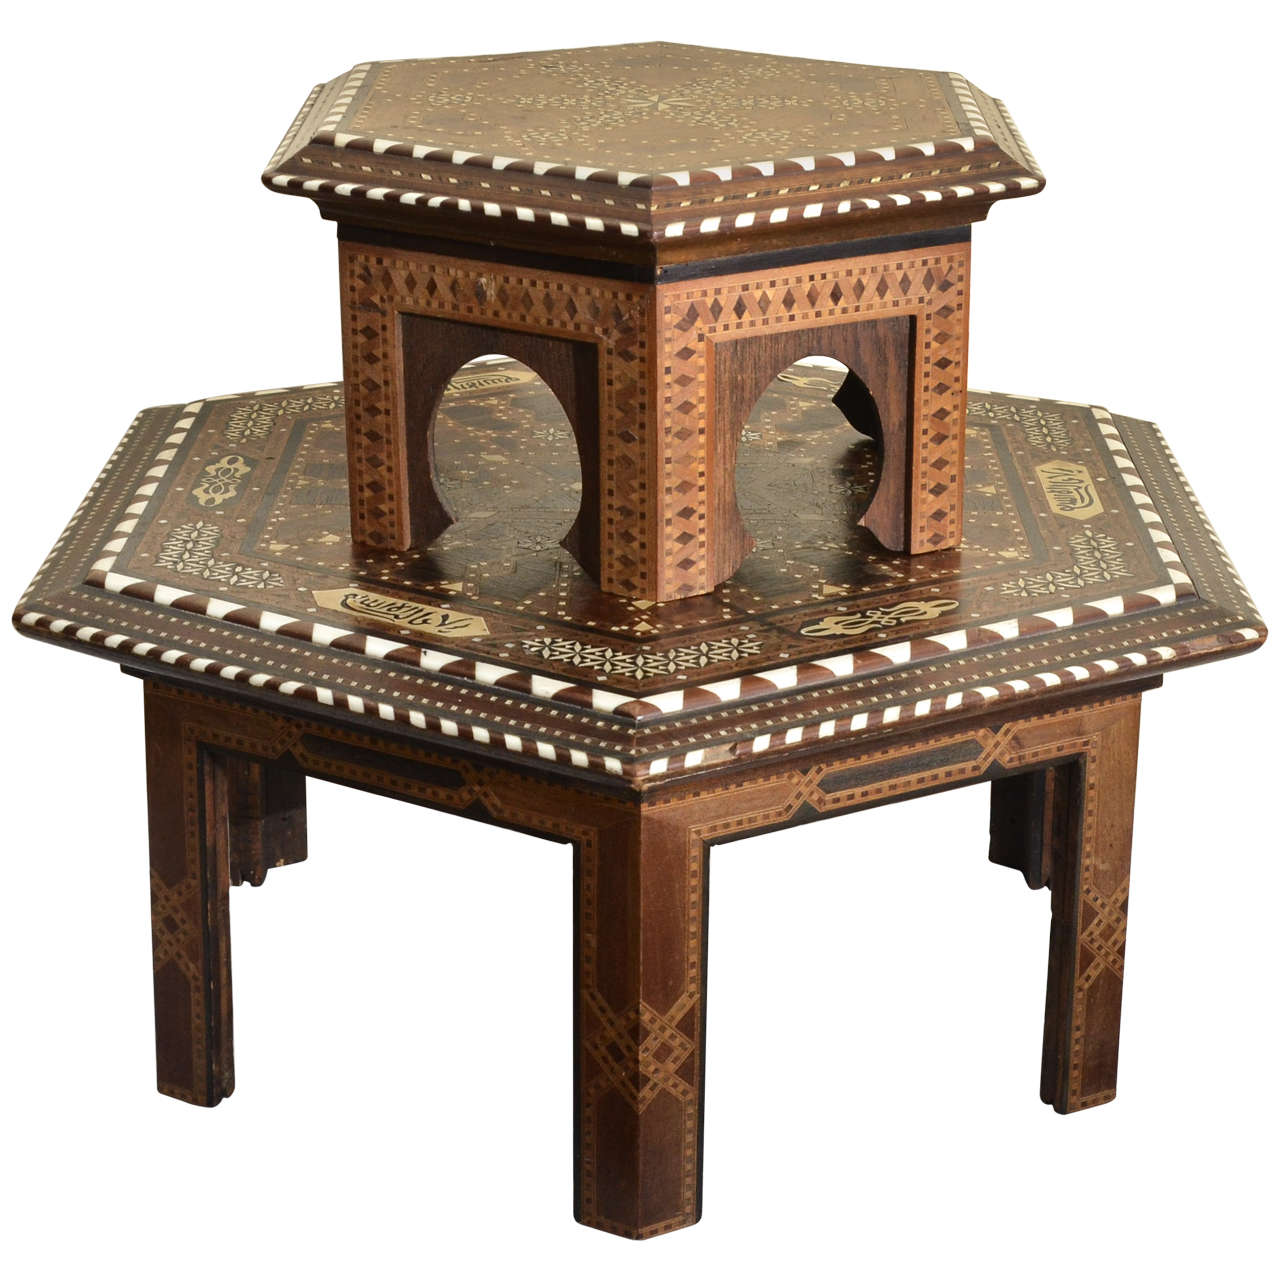 Stacking Middle Eastern Octagonal Inlaid Tables For Sale At 1stdibs